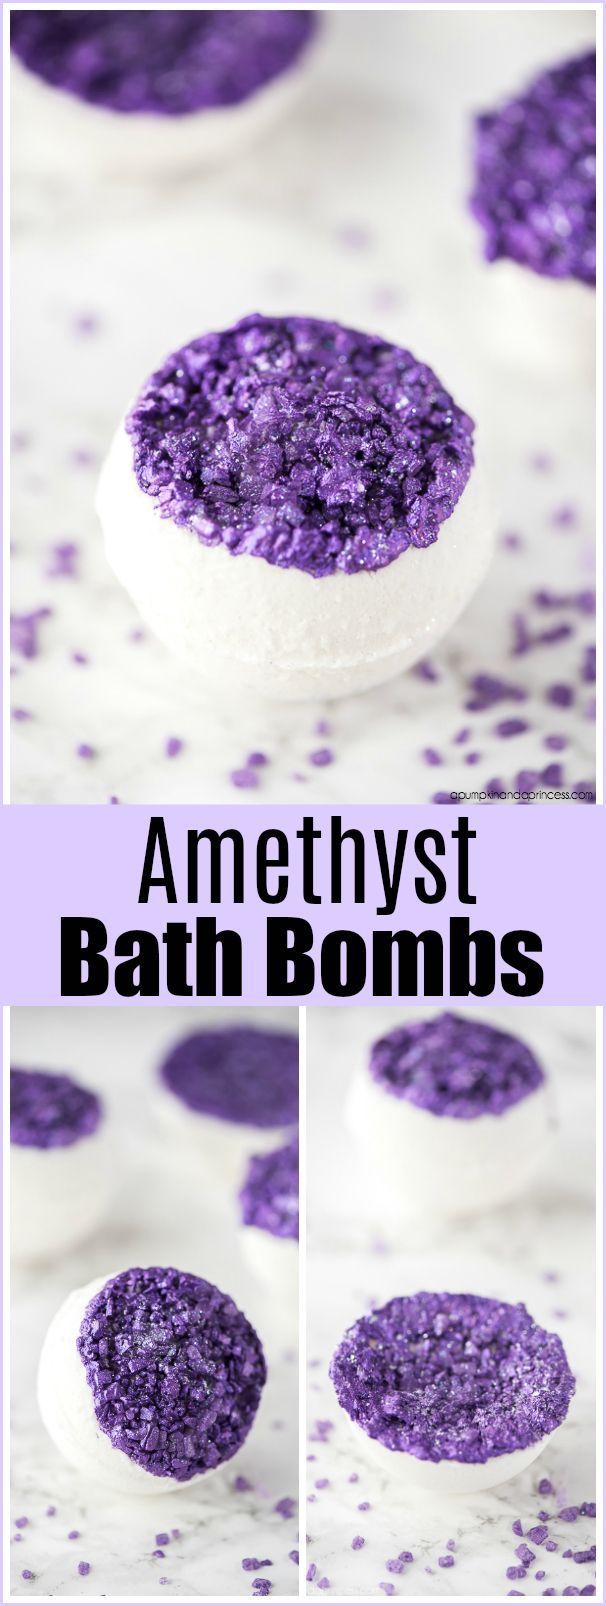 DIY Amethyst Bath Bombs – How to make bath bombs inspired by amethyst stones made with sea salts and lavender essential oil. #soapmaking